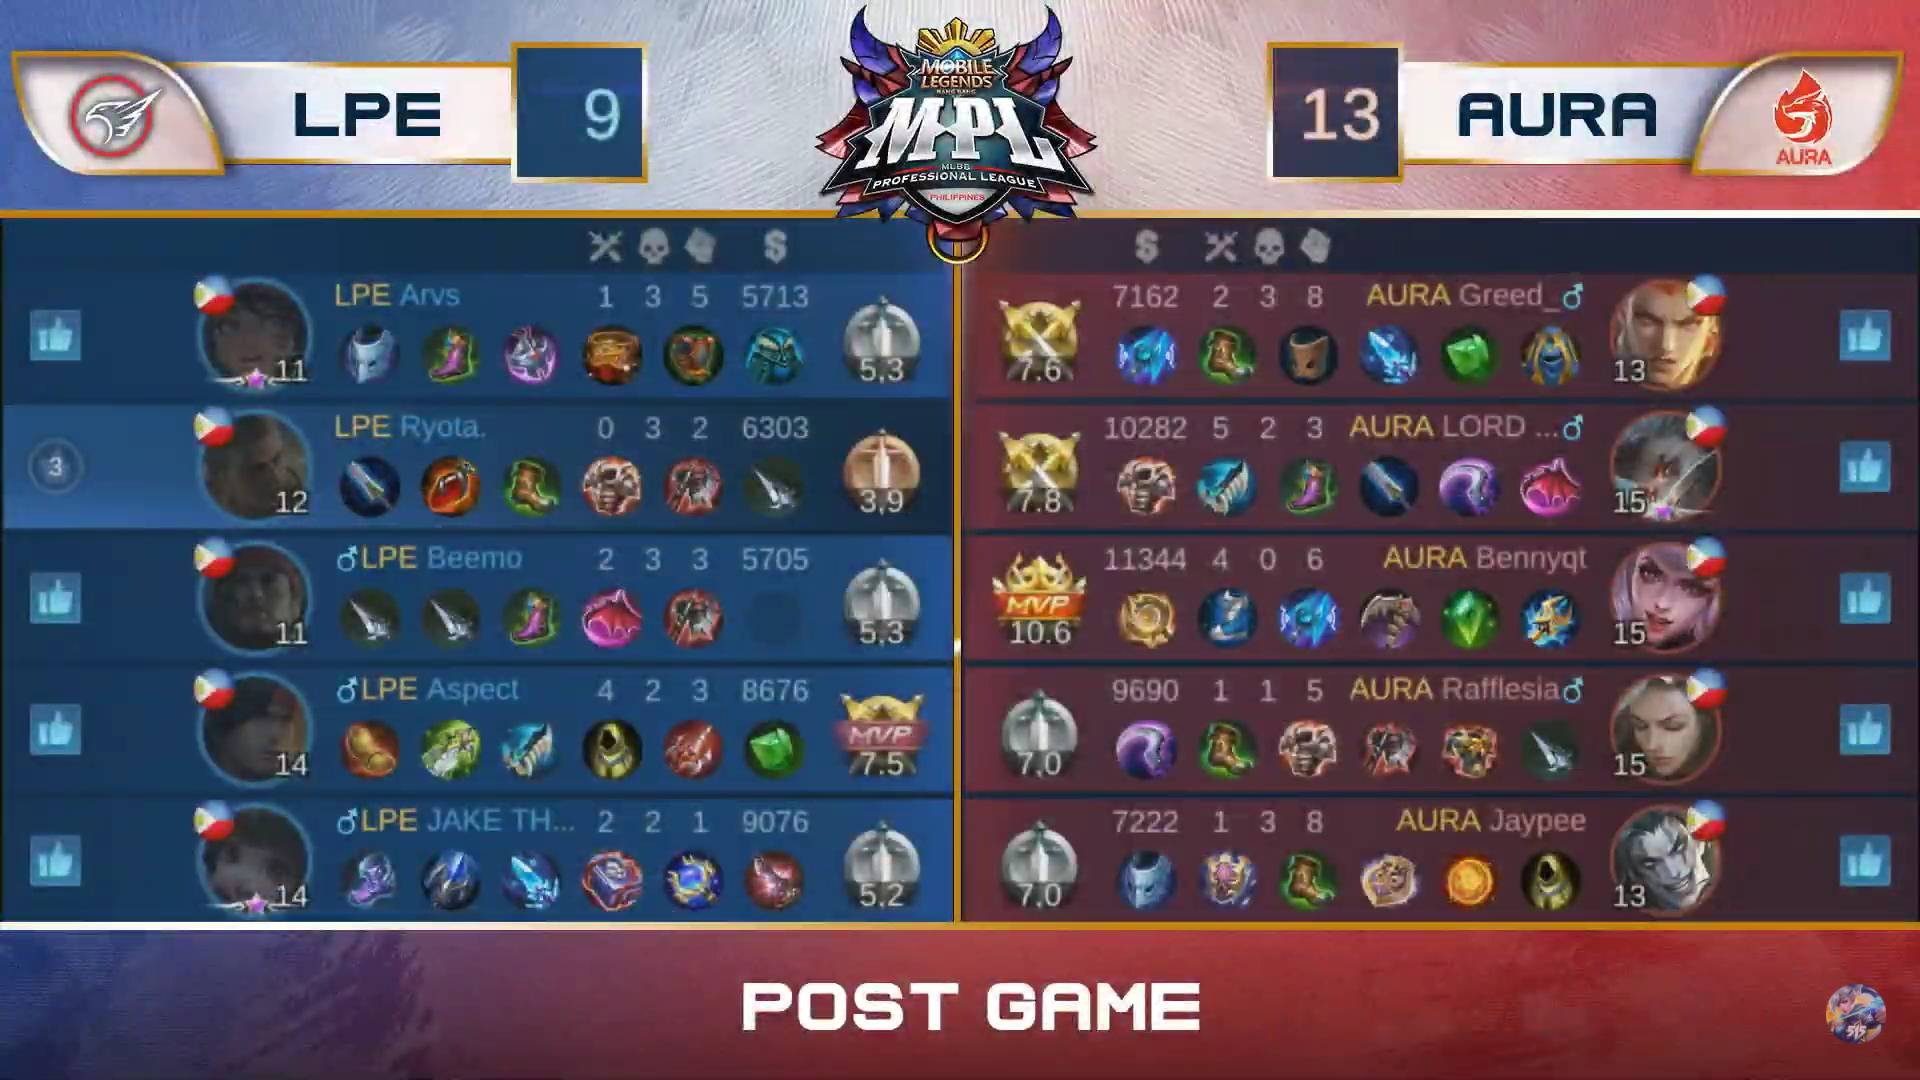 MPL-PH-7-Aura-def-Playbook-Game-2 Bennyqt's Alice powers Aura PH's sweep of Playbook in MPL PH ESports Mobile Legends MPL-PH News  - philippine sports news